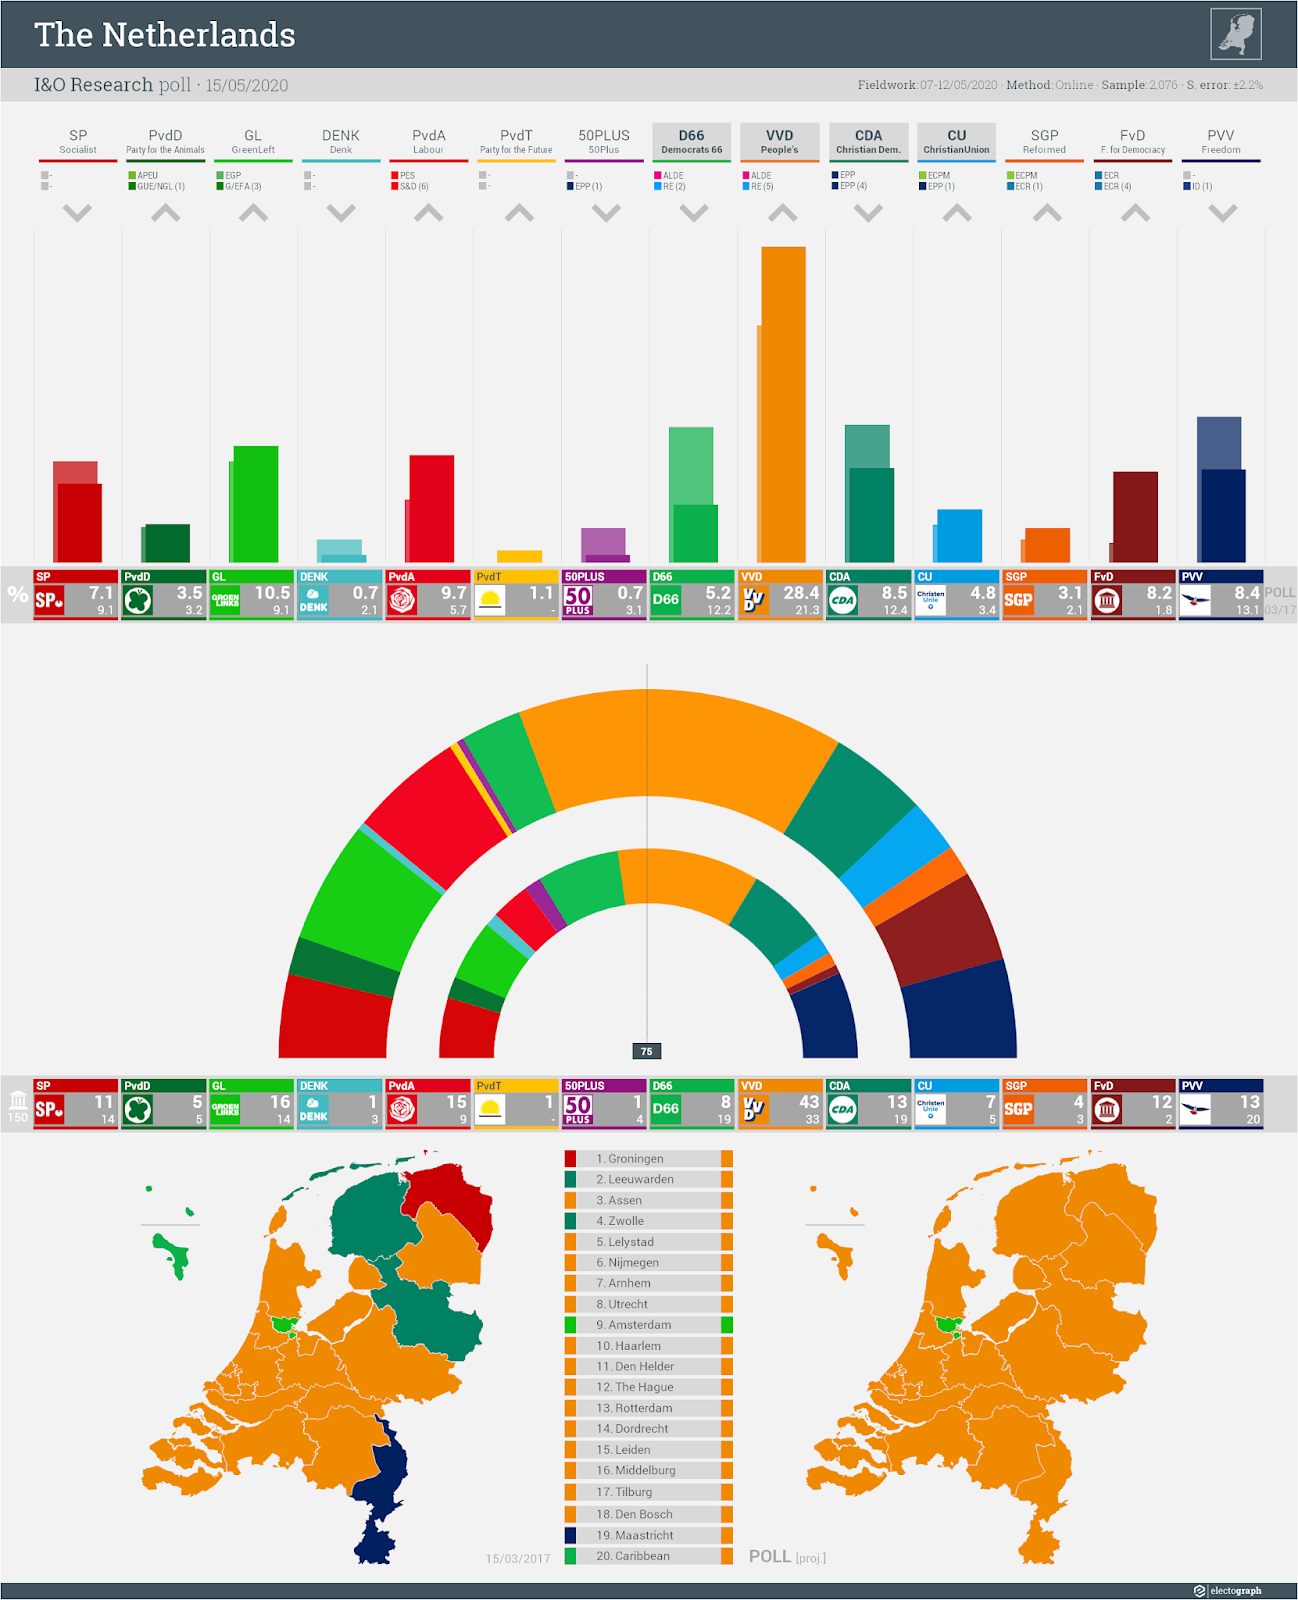 THE NETHERLANDS: I&O Research poll chart, 15 May 2020